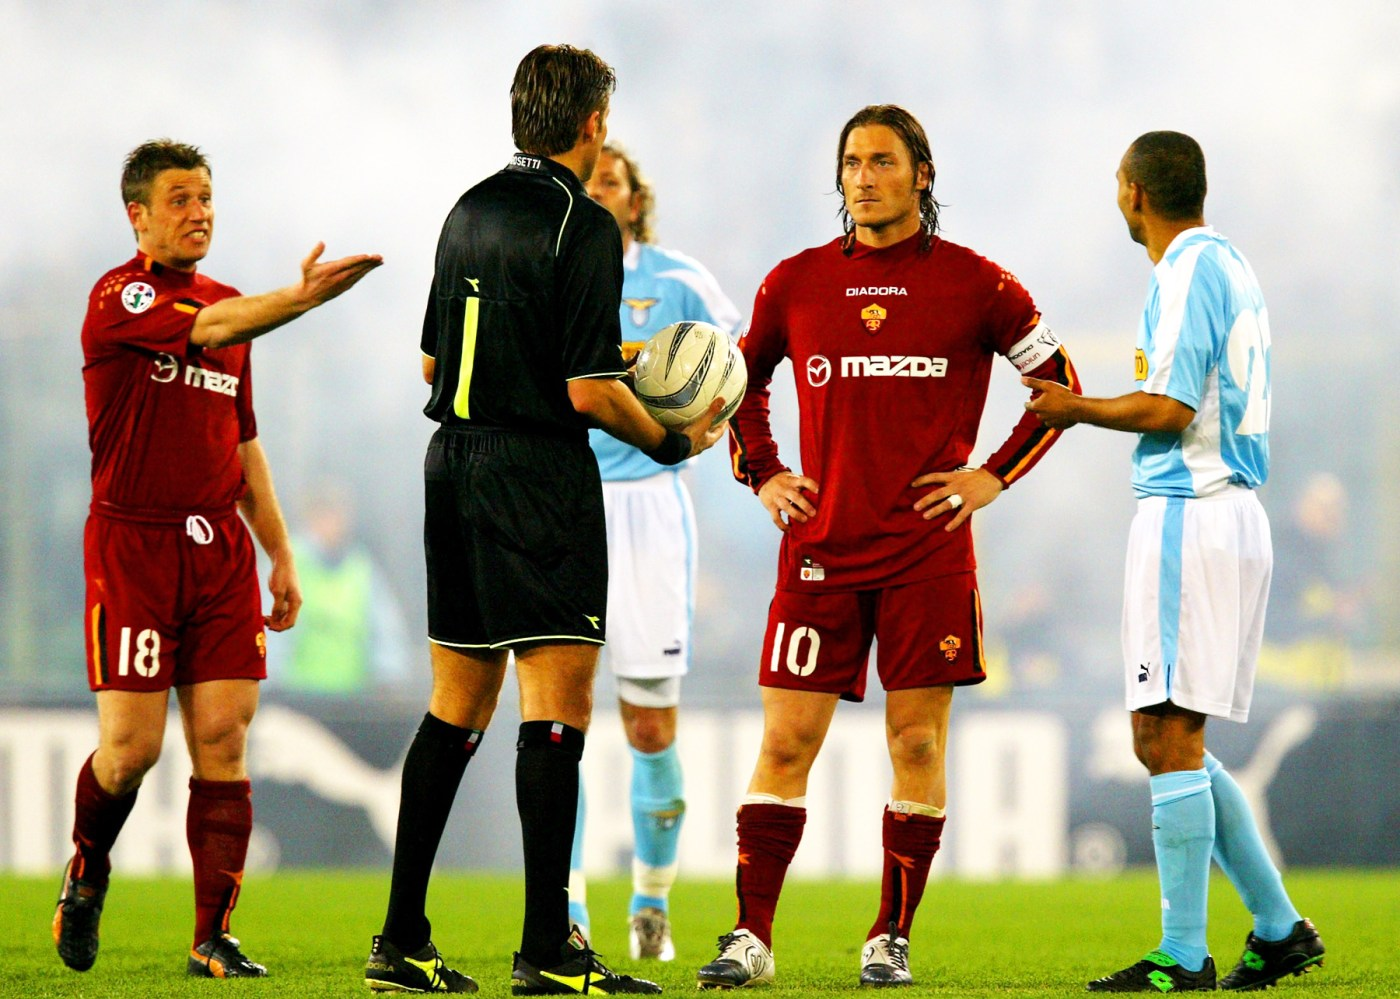 "AS Roma's Antonio Cassano (L) and Francesco Totti (2R) talk with the referee Roberto Rosetti (2L) and Lazio's players Sinisa Mihajlovic and Fabio Liverani (R) during the suspension of the Serie A match at the Olympic Stadium in Rome March 21, 2004. The ""derby"" match between Rome arch-rivals Lazio and AS Roma was abandoned on Sunday after false rumours circulated among fans that a child had been killed by a police car outside the stadium. REUTERS/Giampiero Sposito"